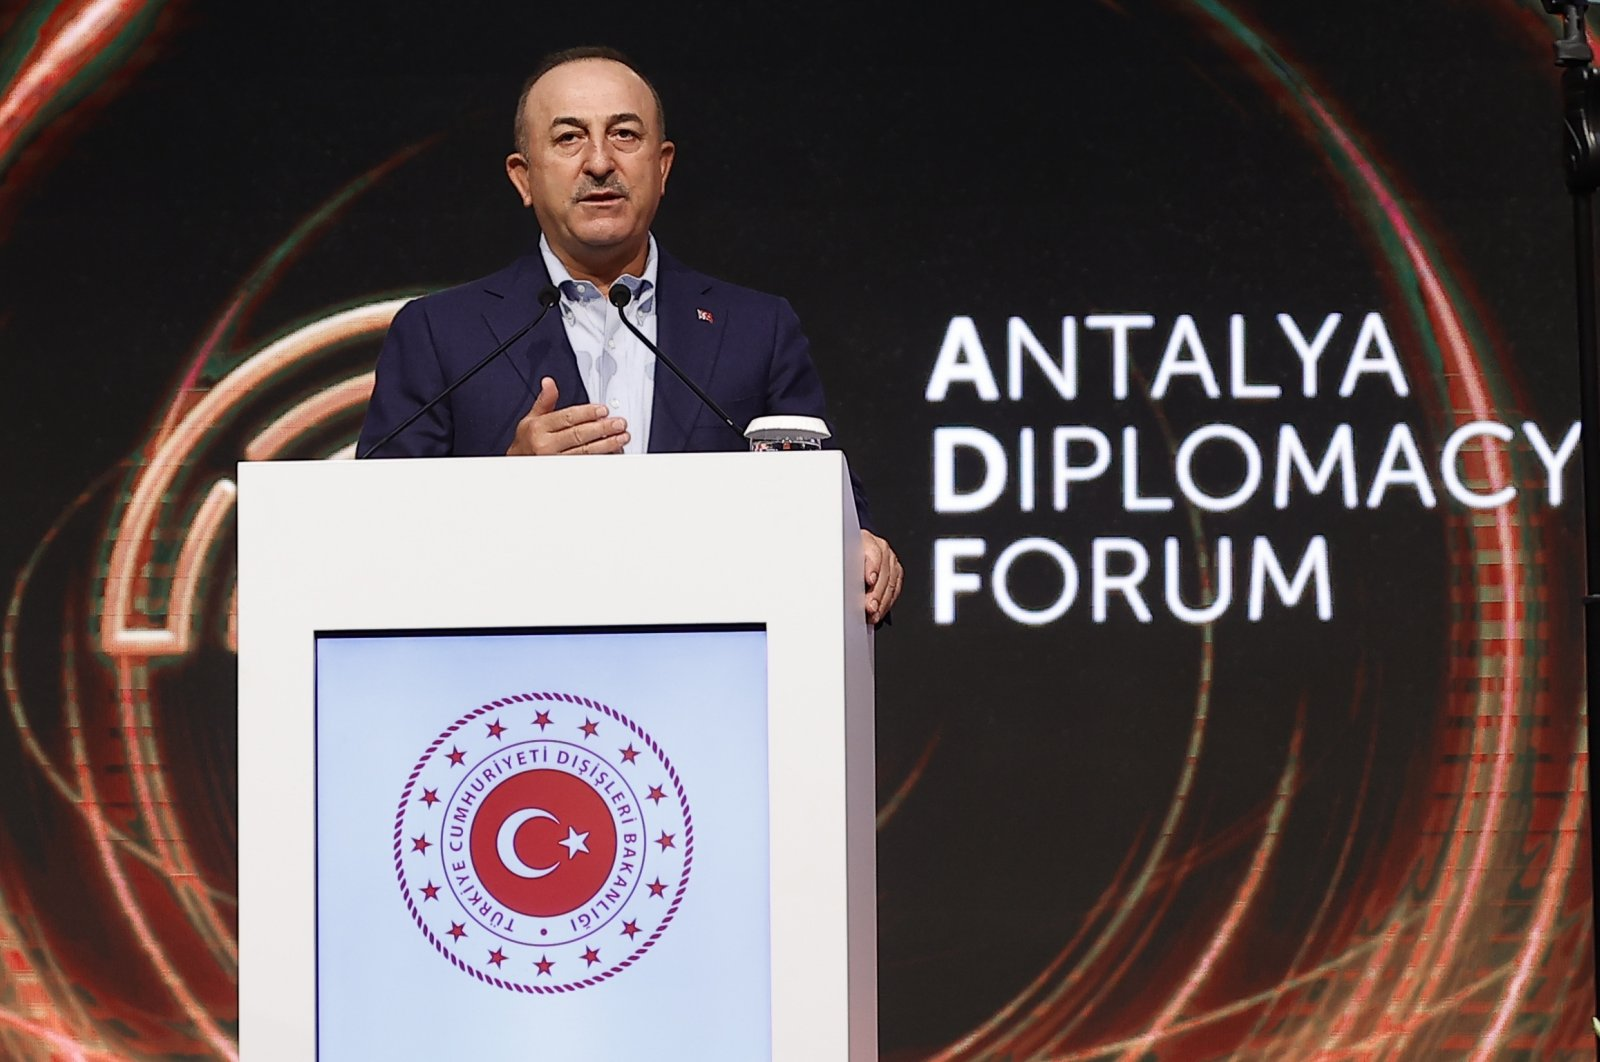 Turkish Foreign Minister Mevlüt Çavuşoğlu speaks at a news conference to inform press members about the upcoming Antalya Diplomacy Forum, Antalya, Turkey, June 16, 2021. (AA Photo)